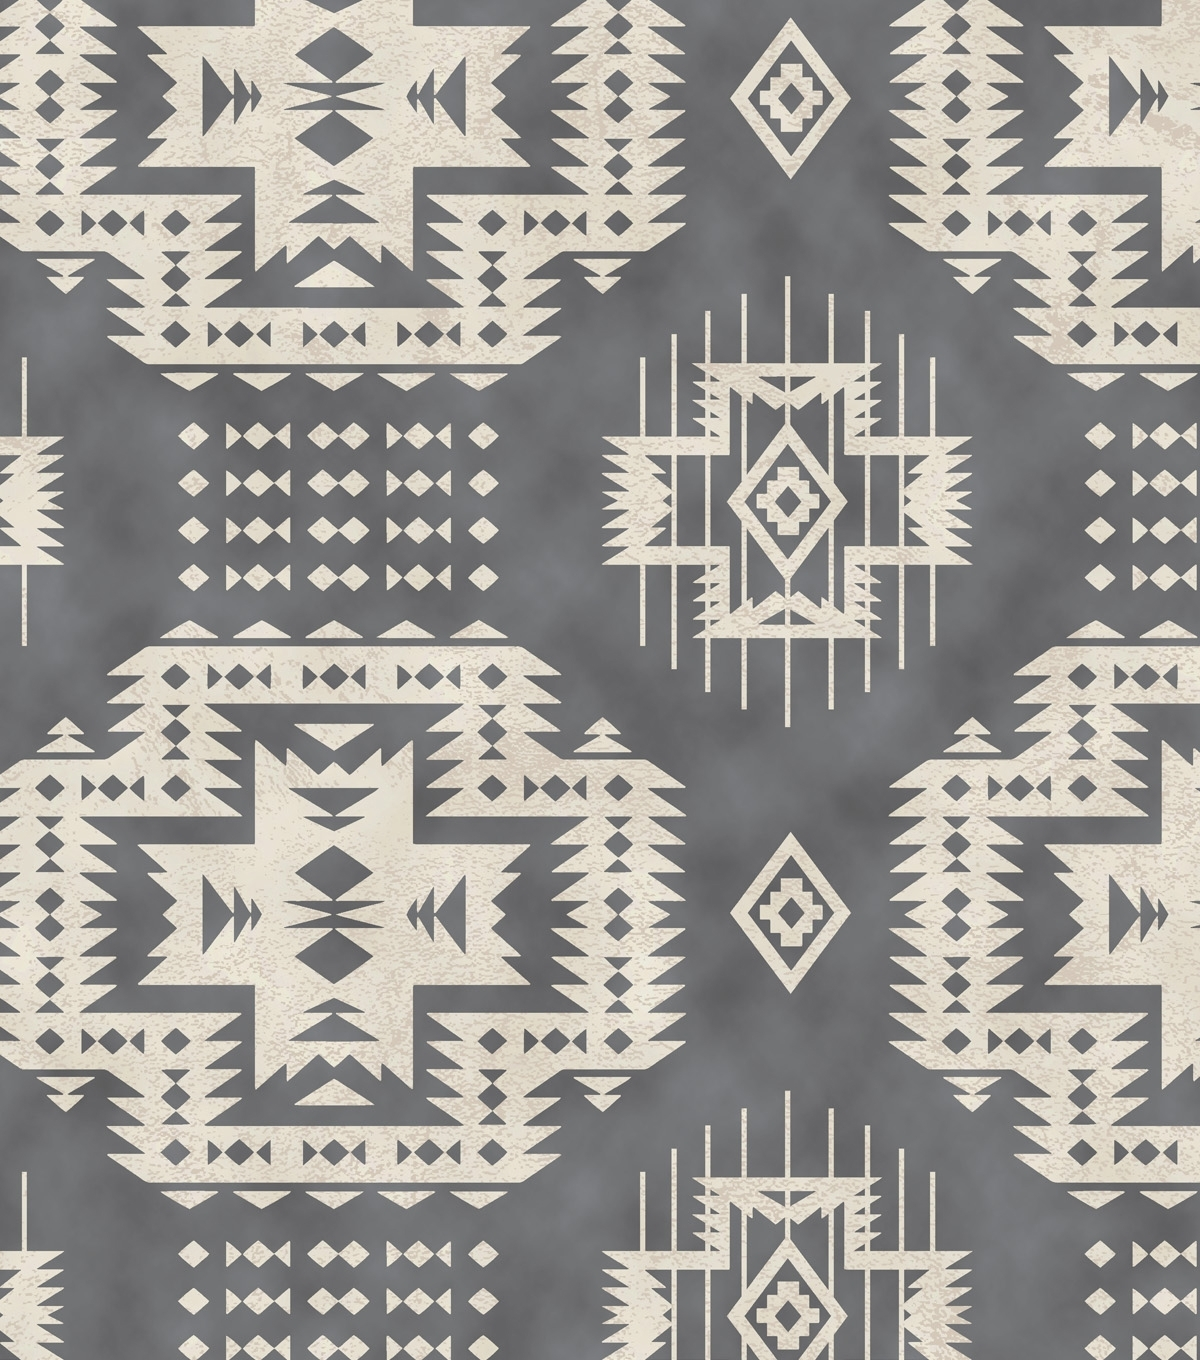 Snuggle Flannel Fabric Grey Aztec | Fabric Finds With Joann Inside Newest Aztec Fabric Wall Art (View 13 of 15)